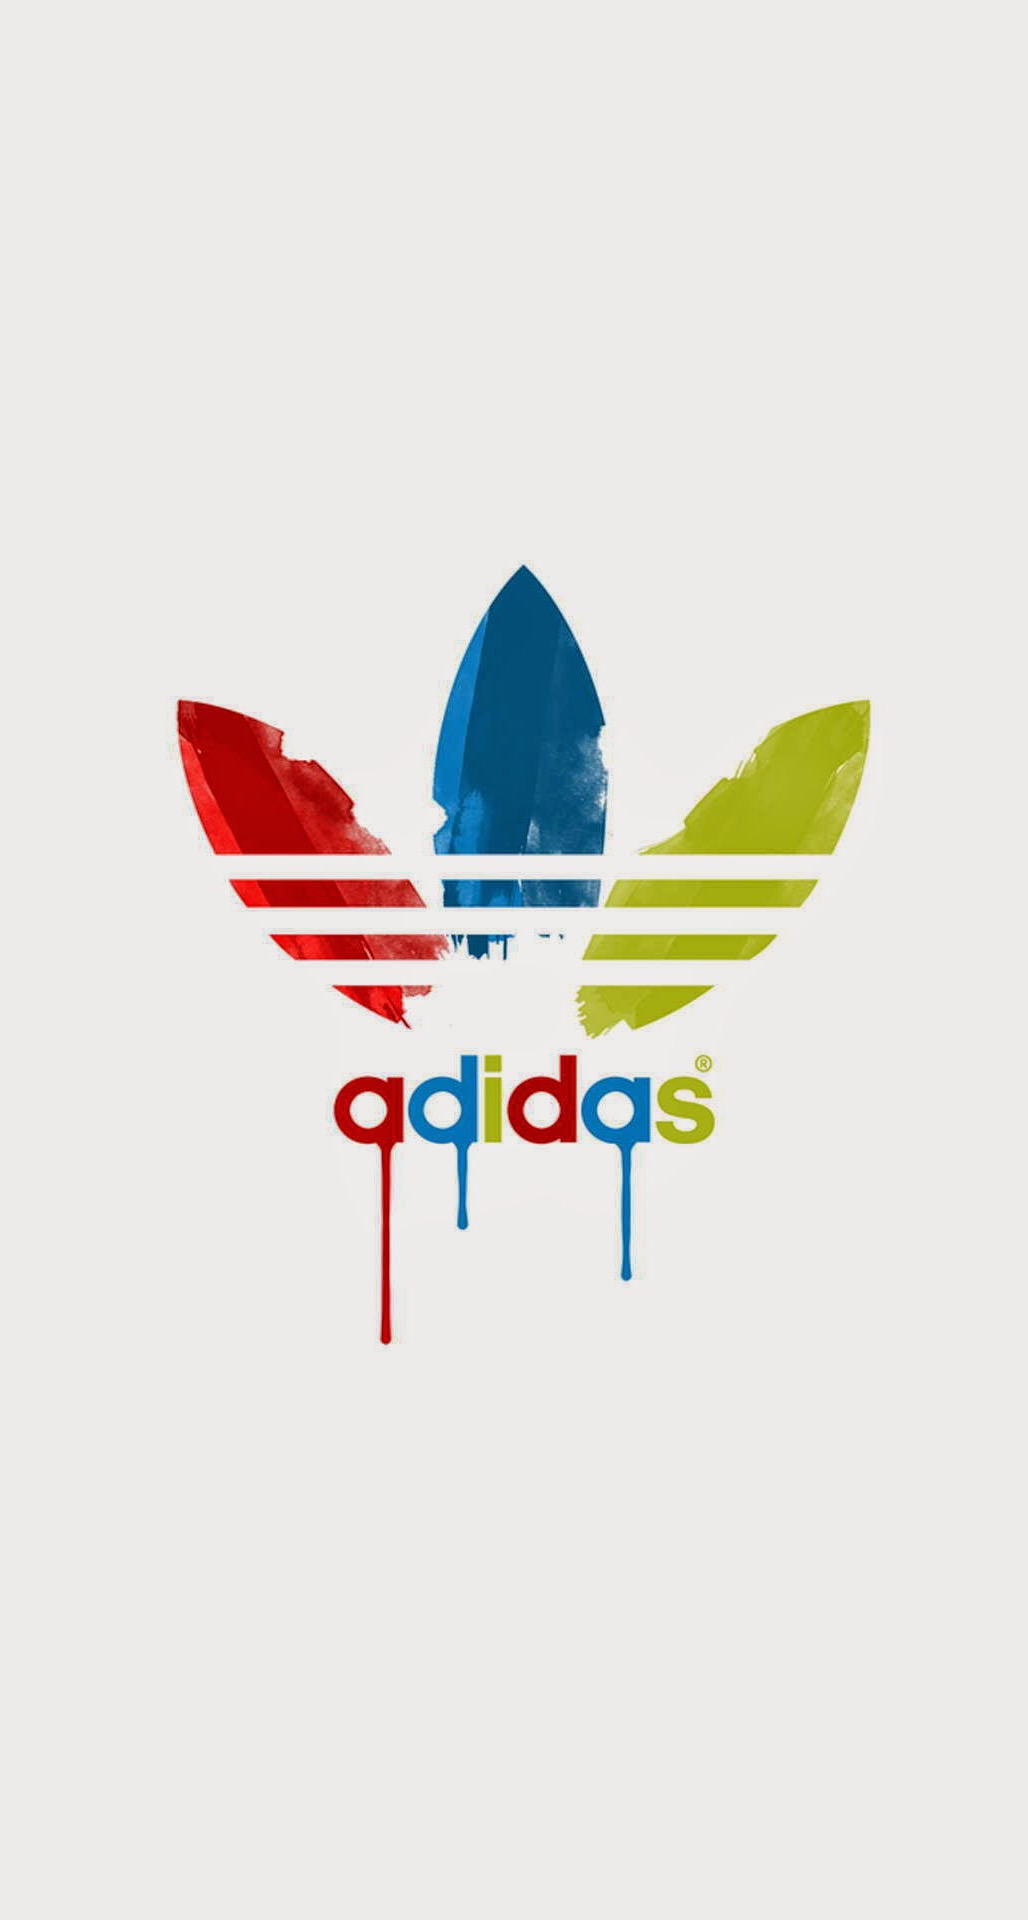 Adidas-Dripping-Paint-Logo-iPhone-Plus-HD-jpg-×-pixels-wallpaper-wp4404177